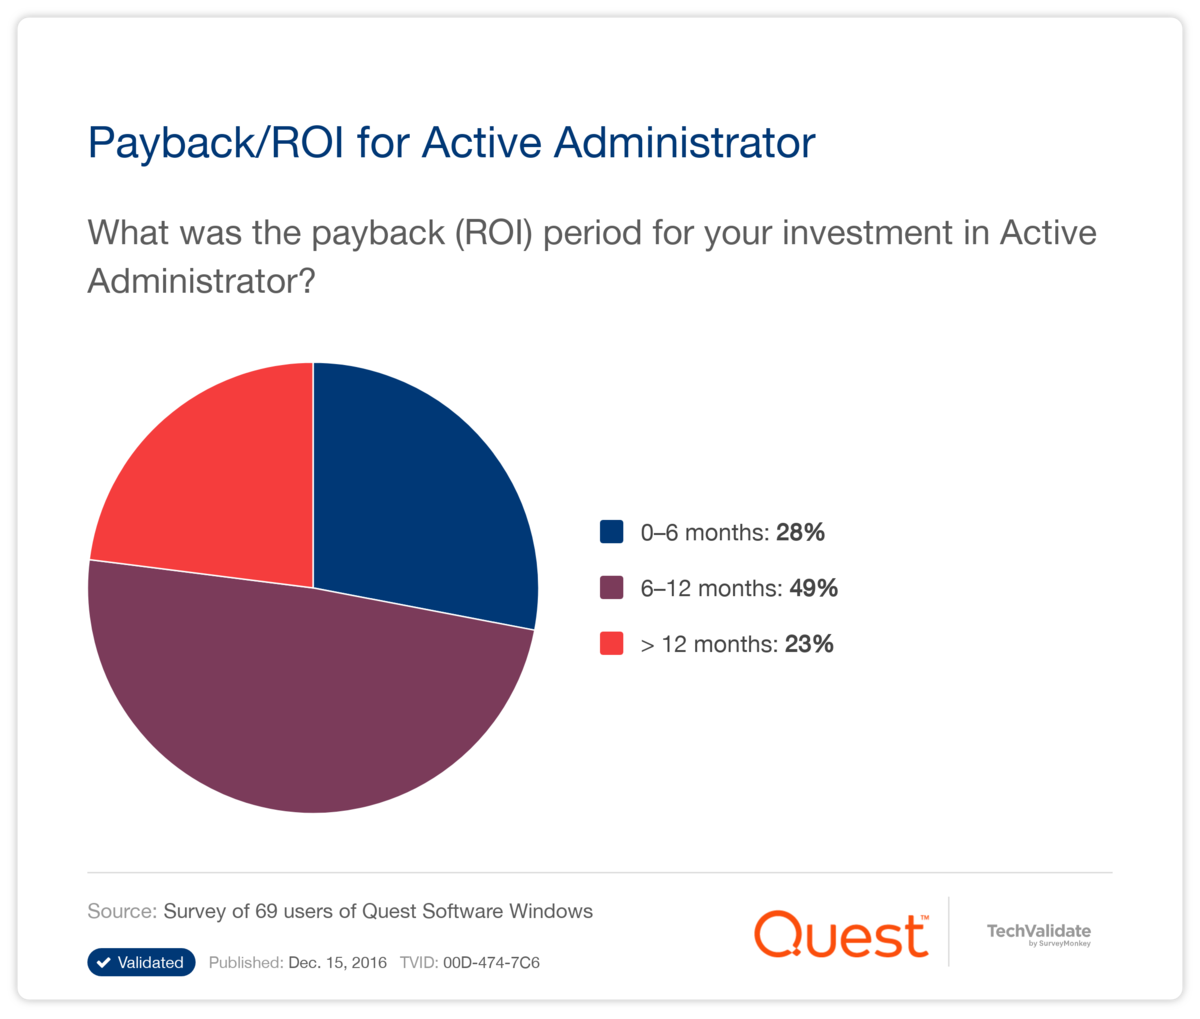 Payback/ROI for Active Administrator